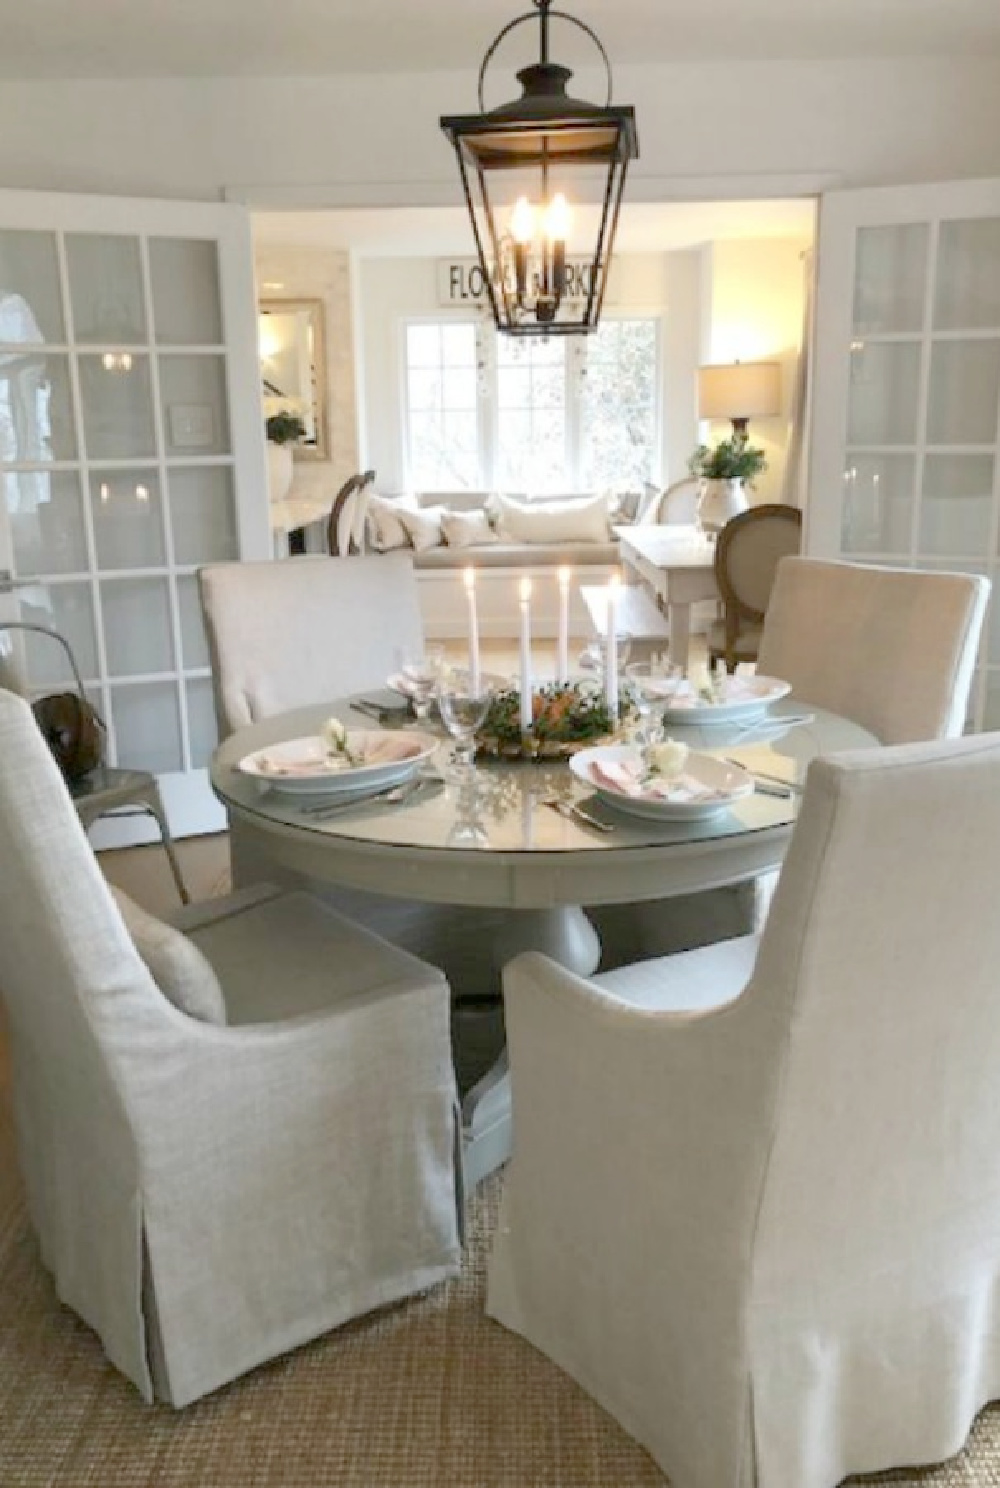 Belgian linen arm chairs around my round dining table - Hello Lovely Studio.